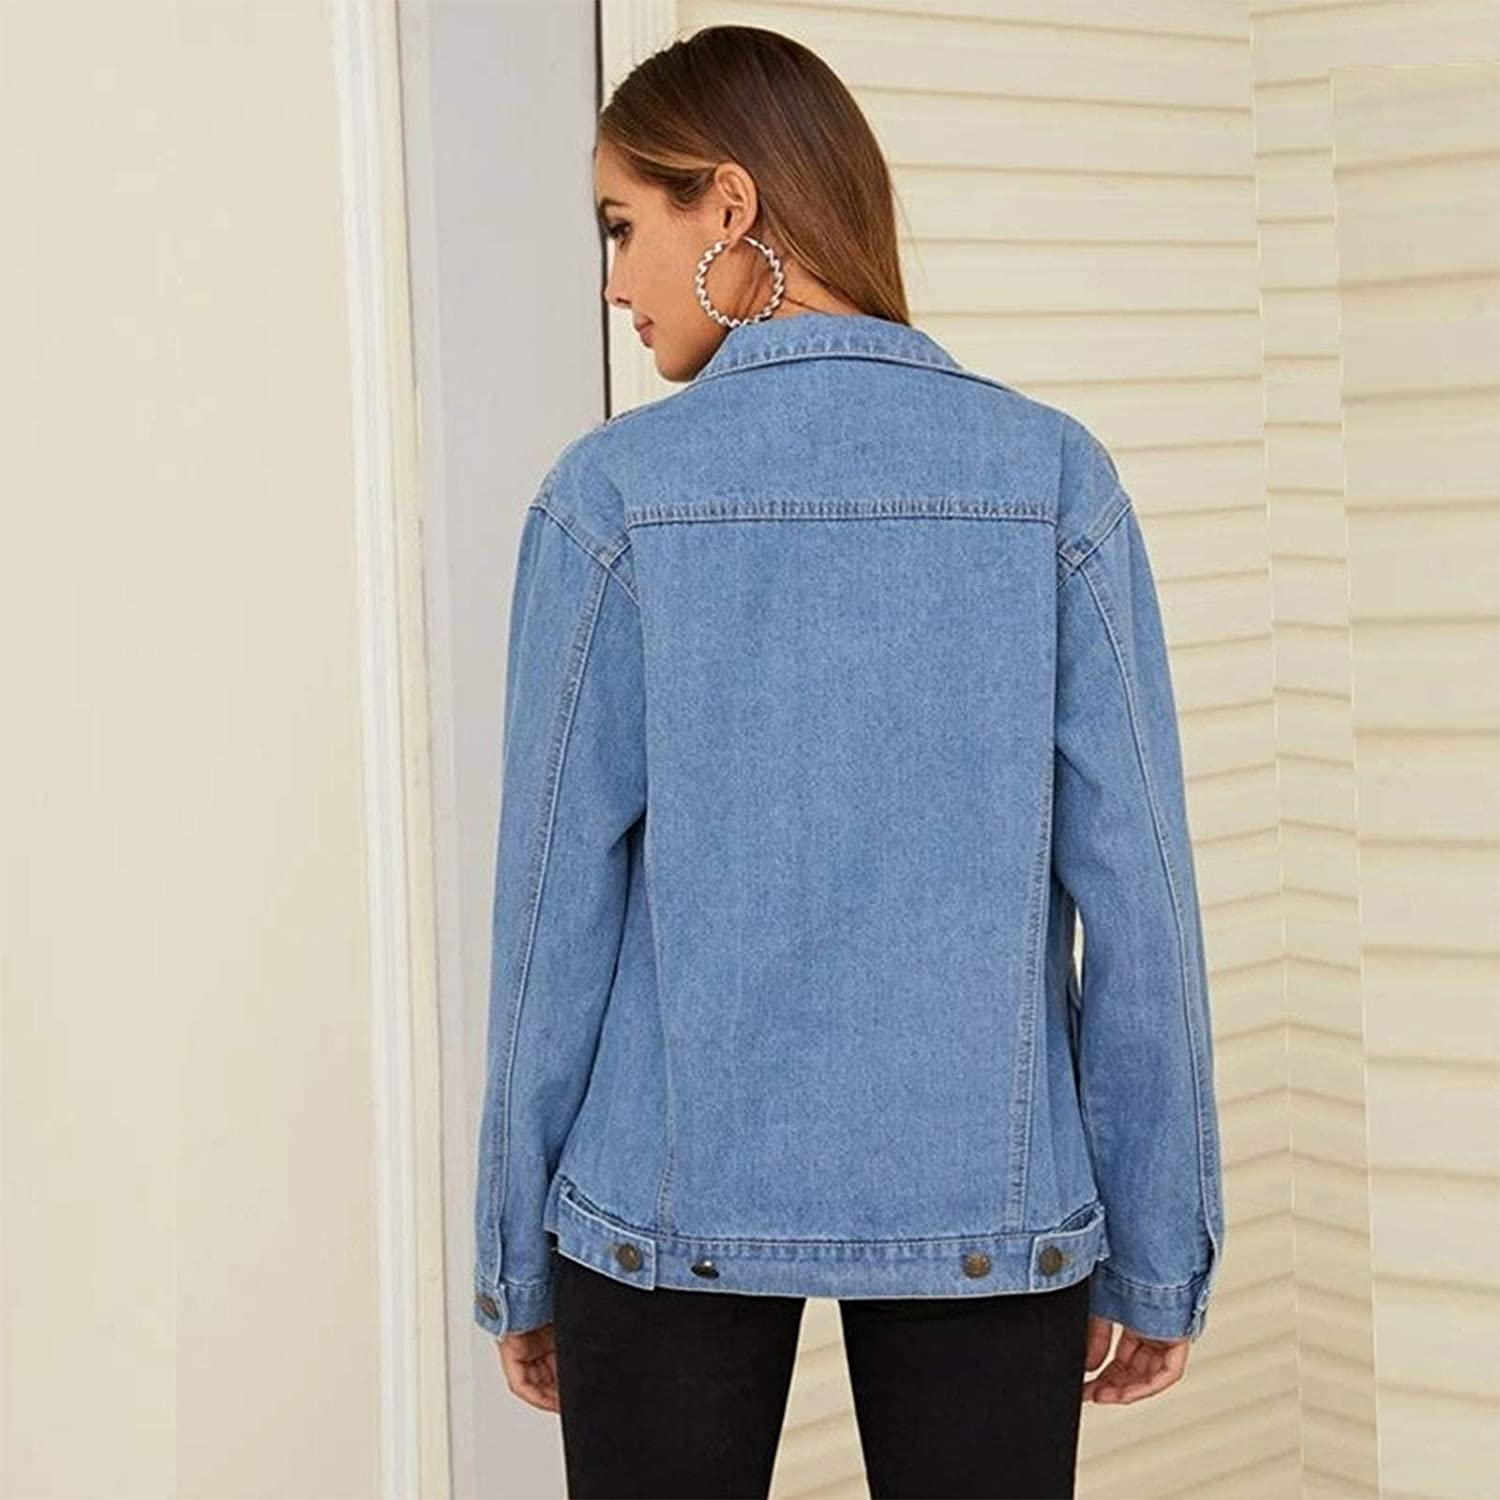 Women's Denim Lapel Jacket Fashion Casual Loose Comfortable Washed Distressed Denim Long Sleeve Jacket for Women (Size : Small)